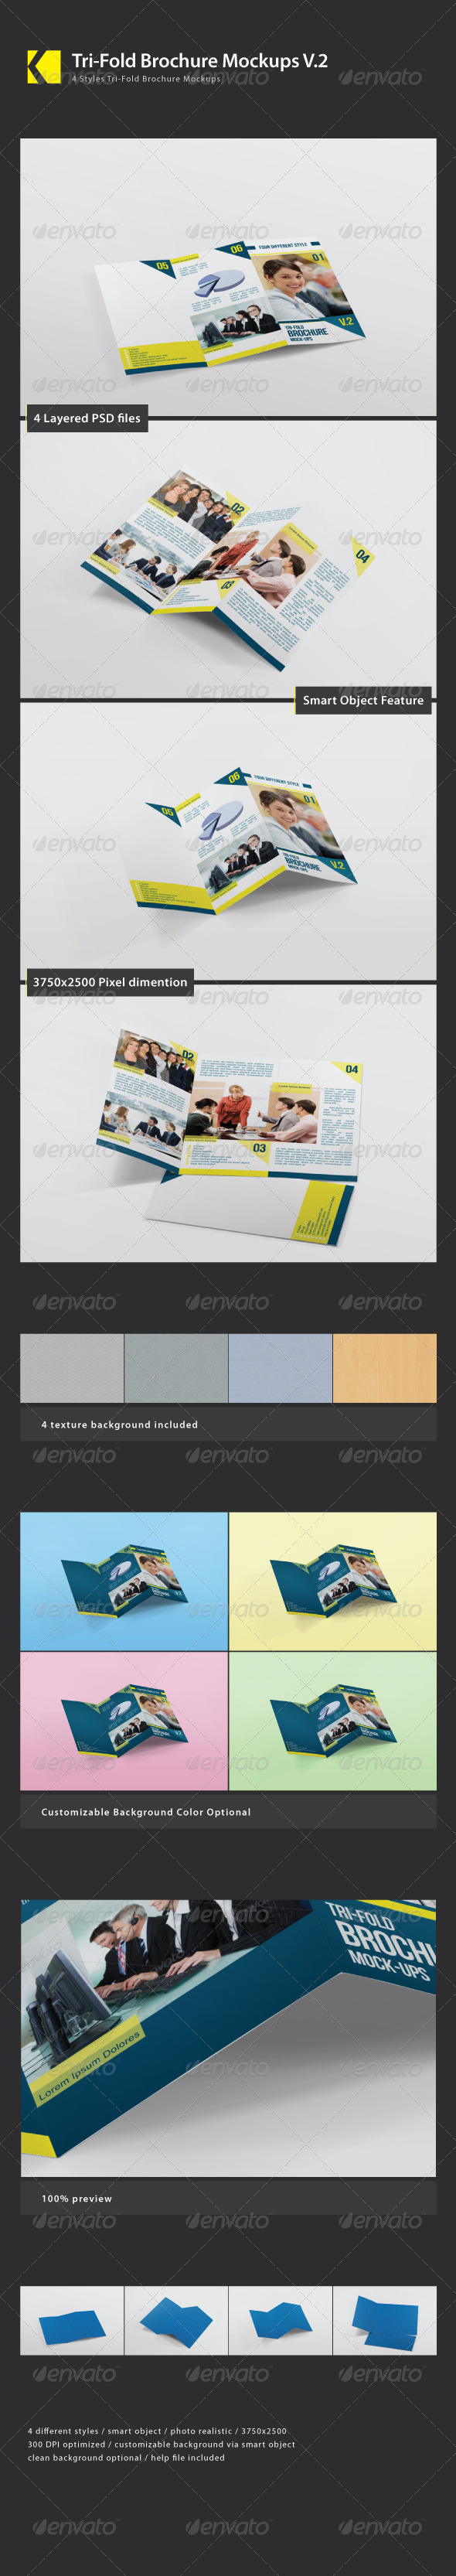 Tri-Fold Brochure Mockups Vol 02 - Product Mock-Ups Graphics